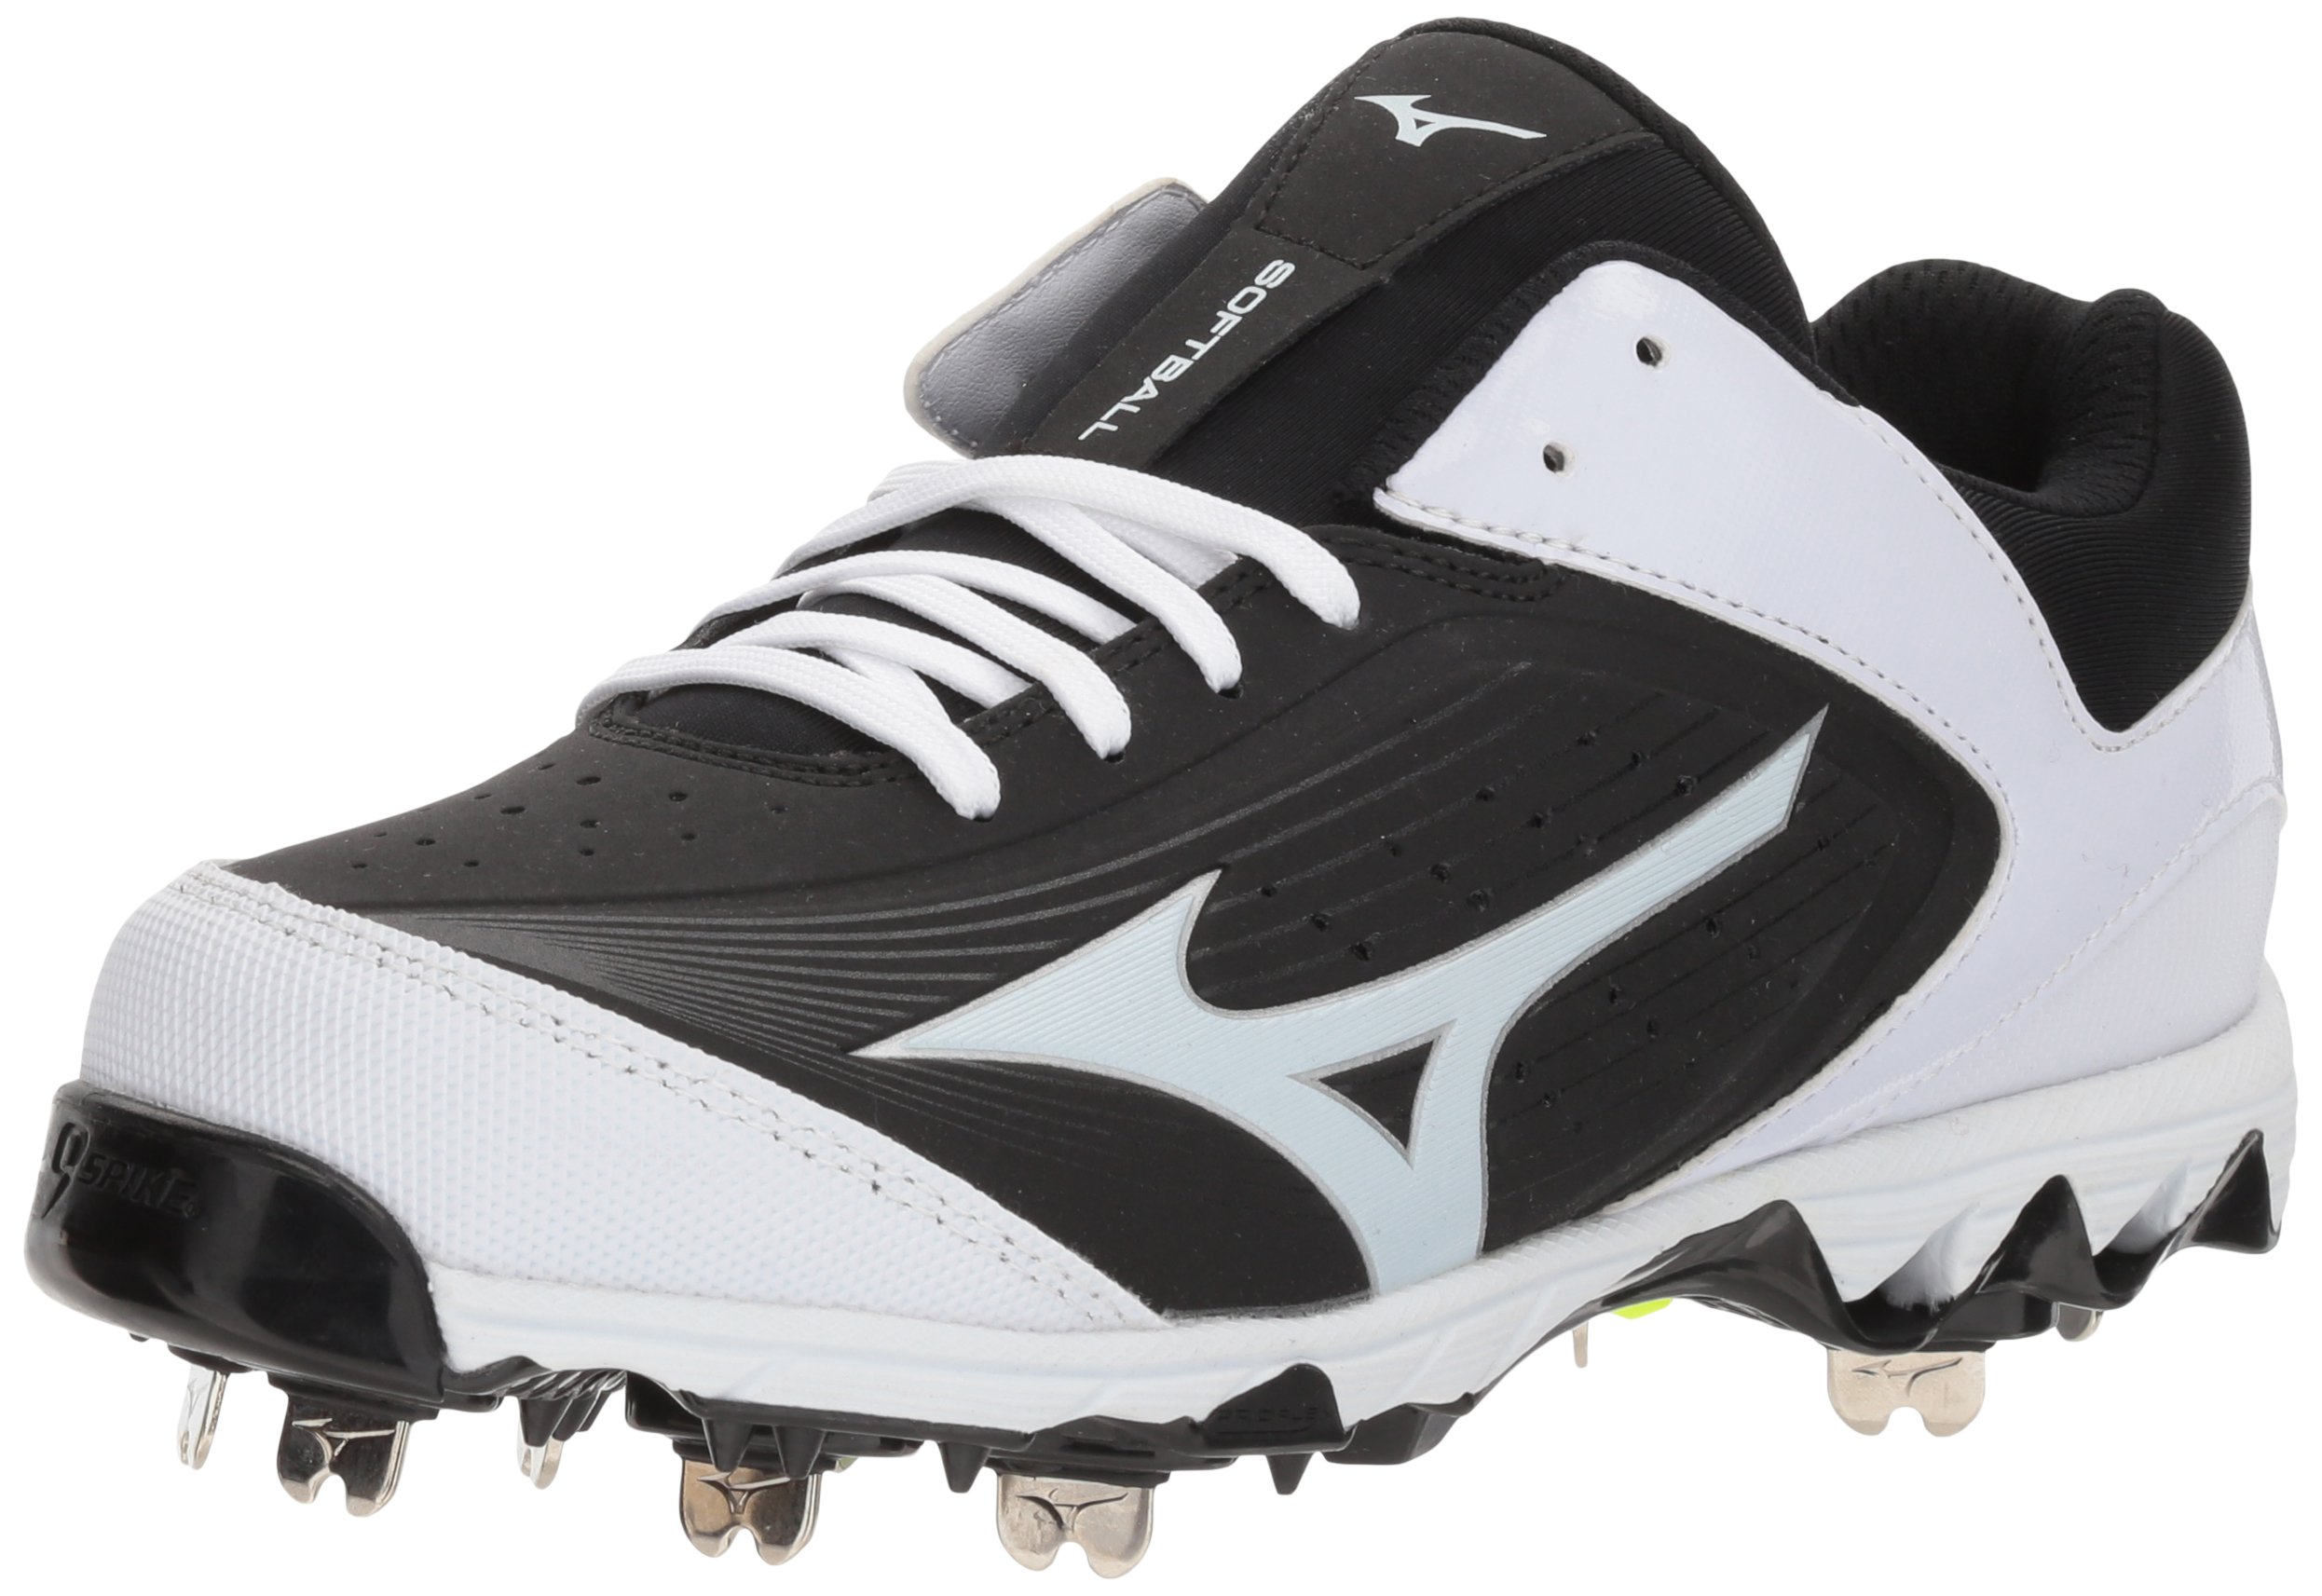 81dee57def33 See all customer reviews · Mizuno Womens Swift 5 Fastpitch Softball Cleat  Shoe product image